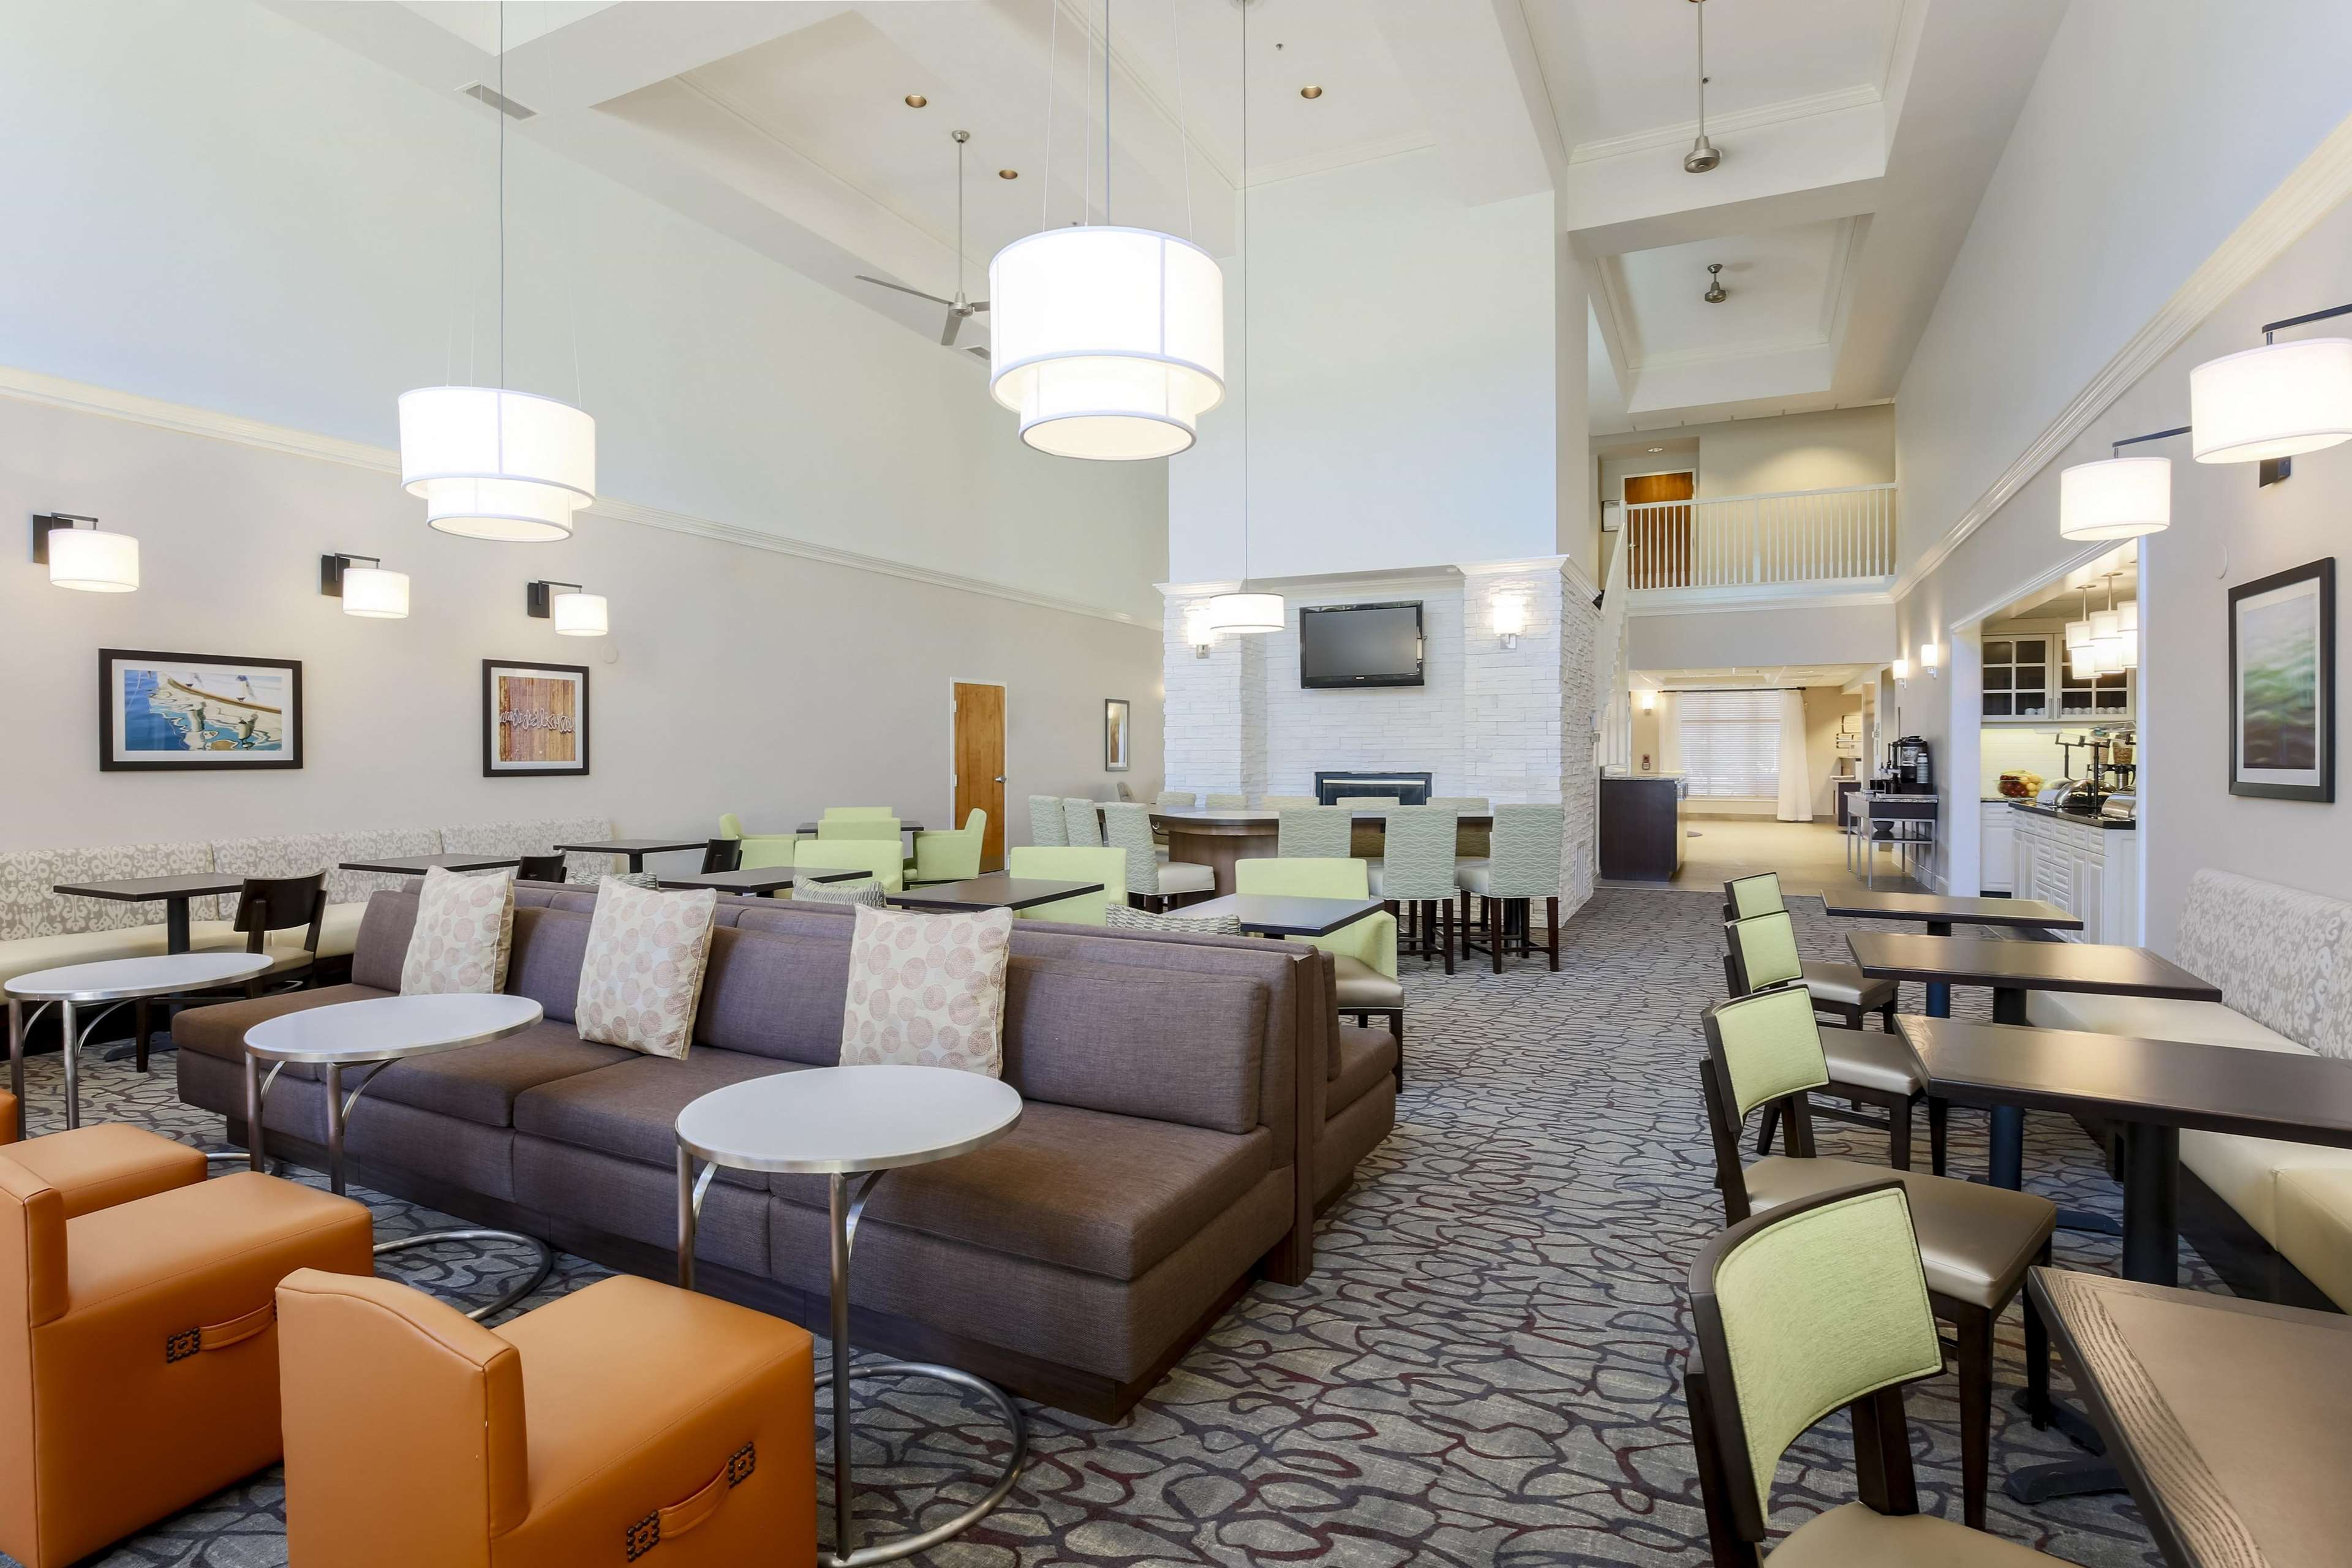 Homewood Suites by Hilton St. Petersburg Clearwater image 24